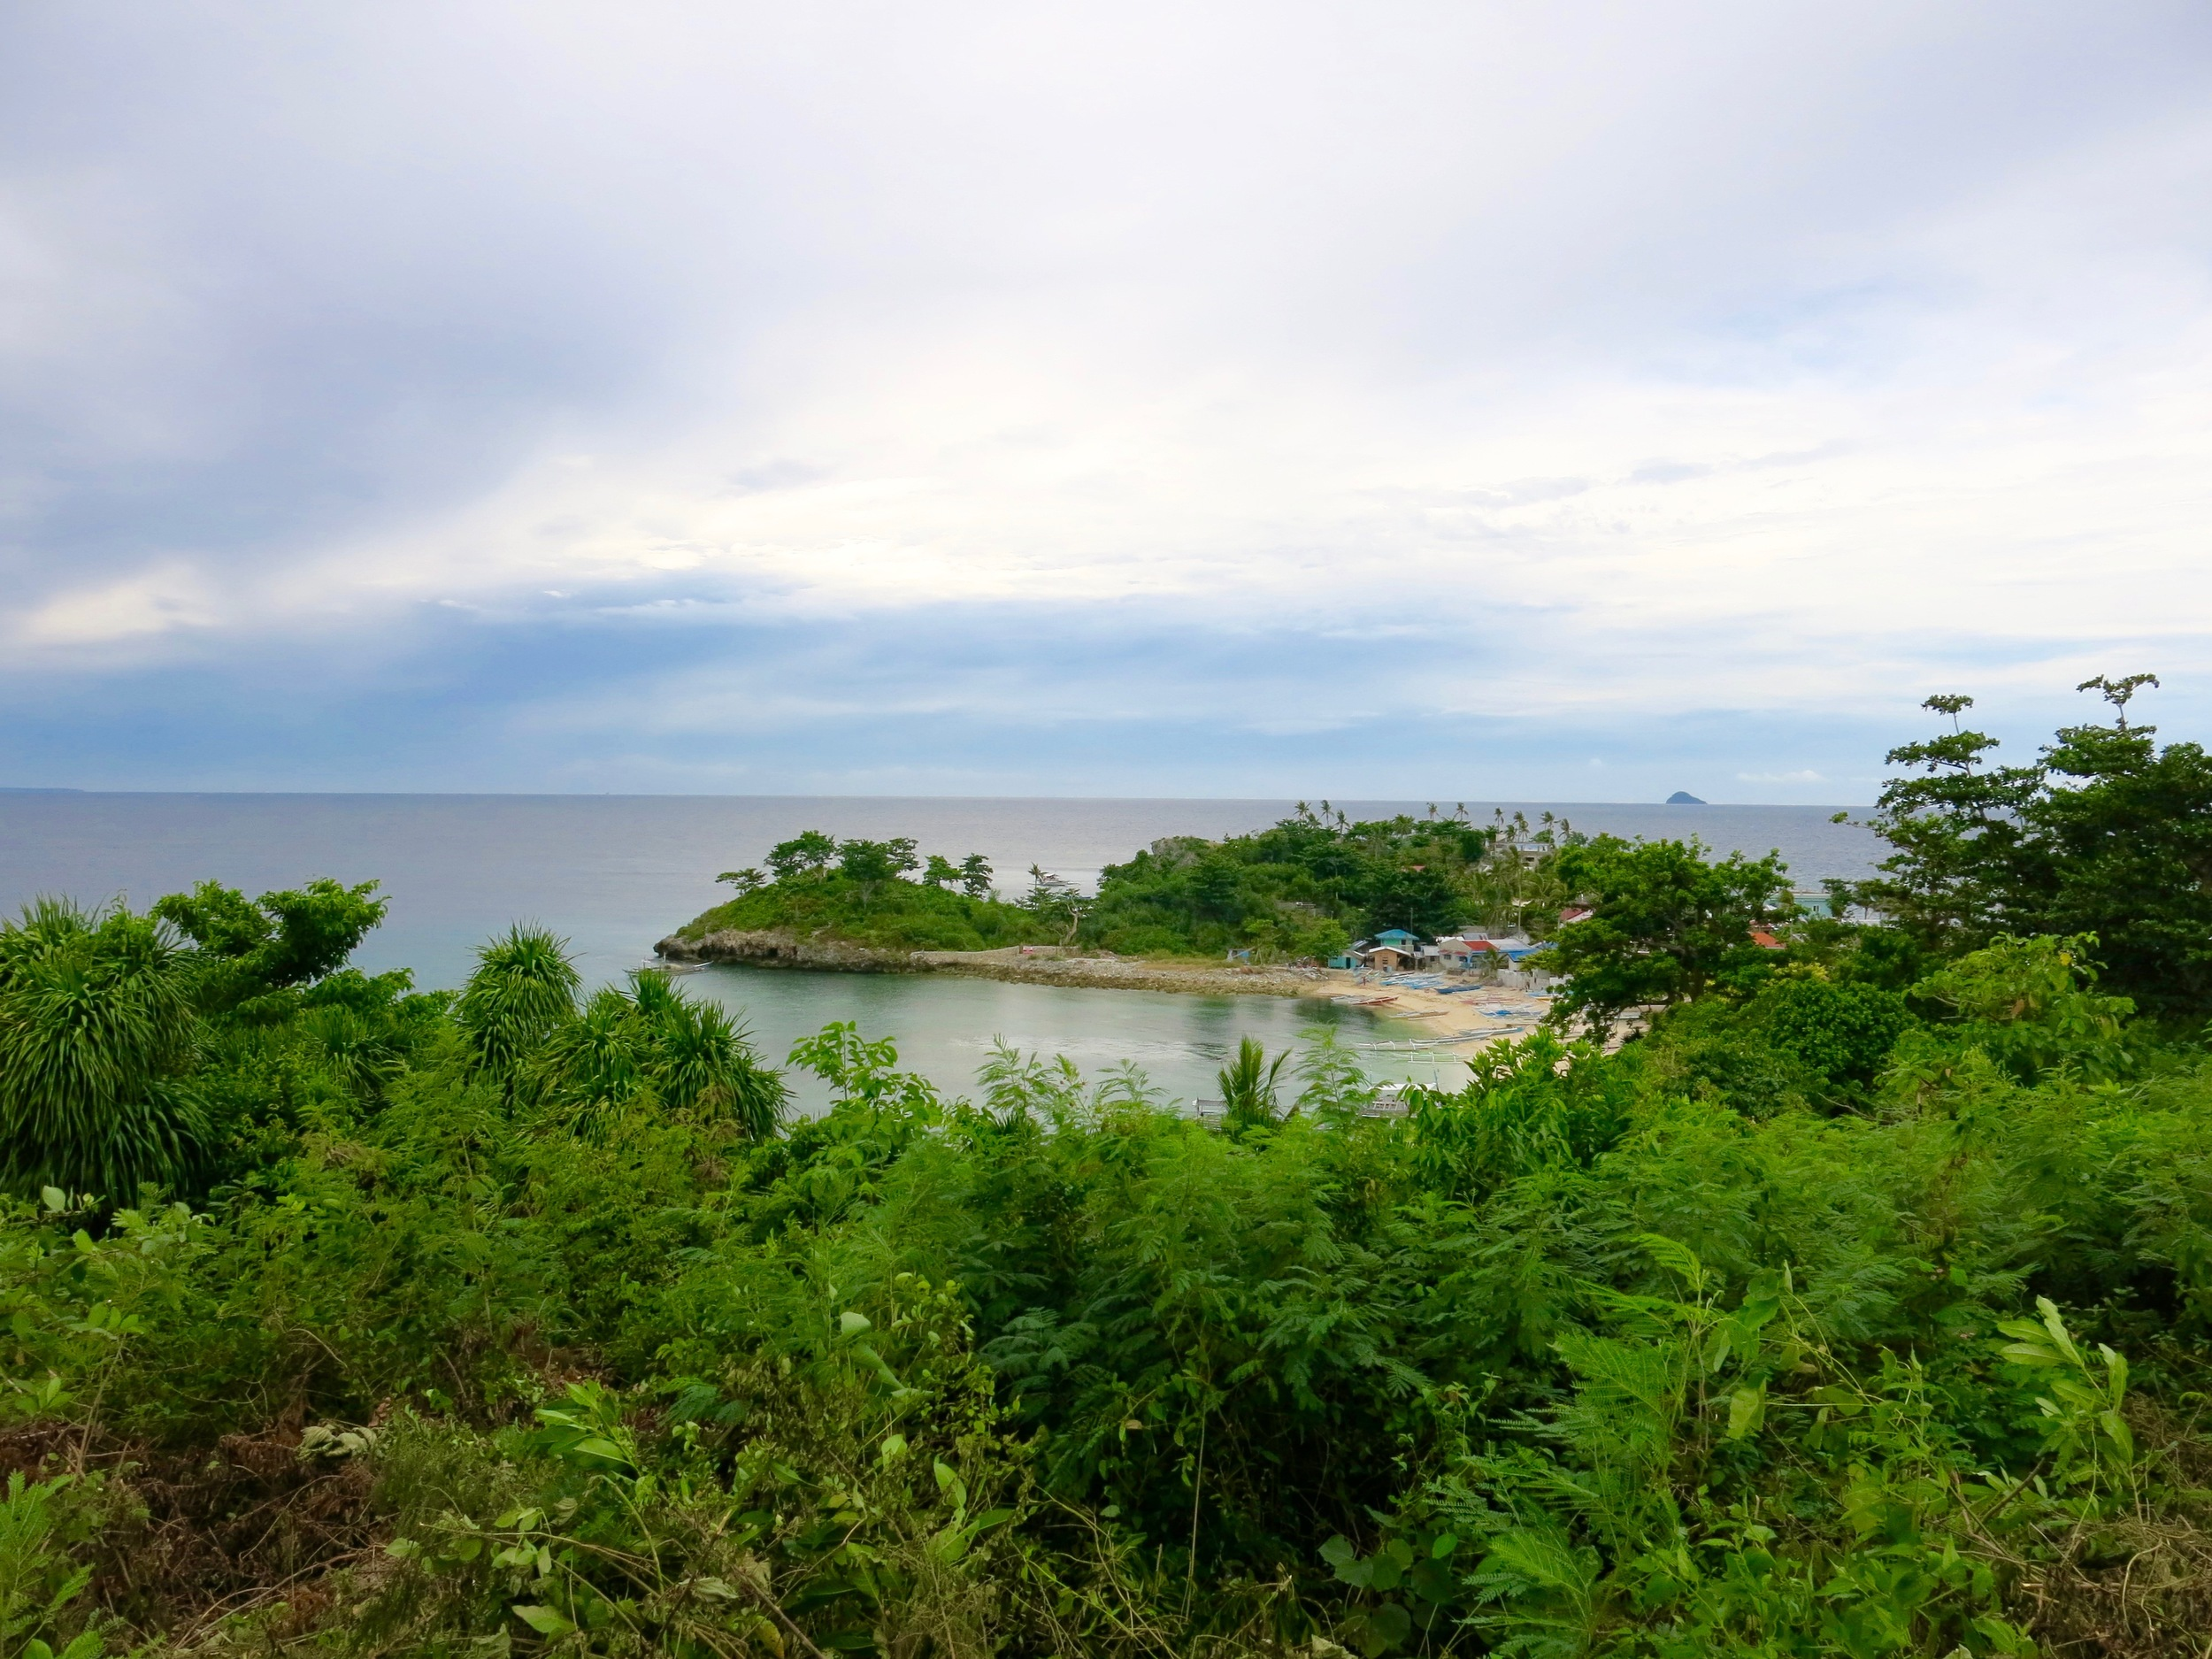 The view from Malapascua Island lighthouse